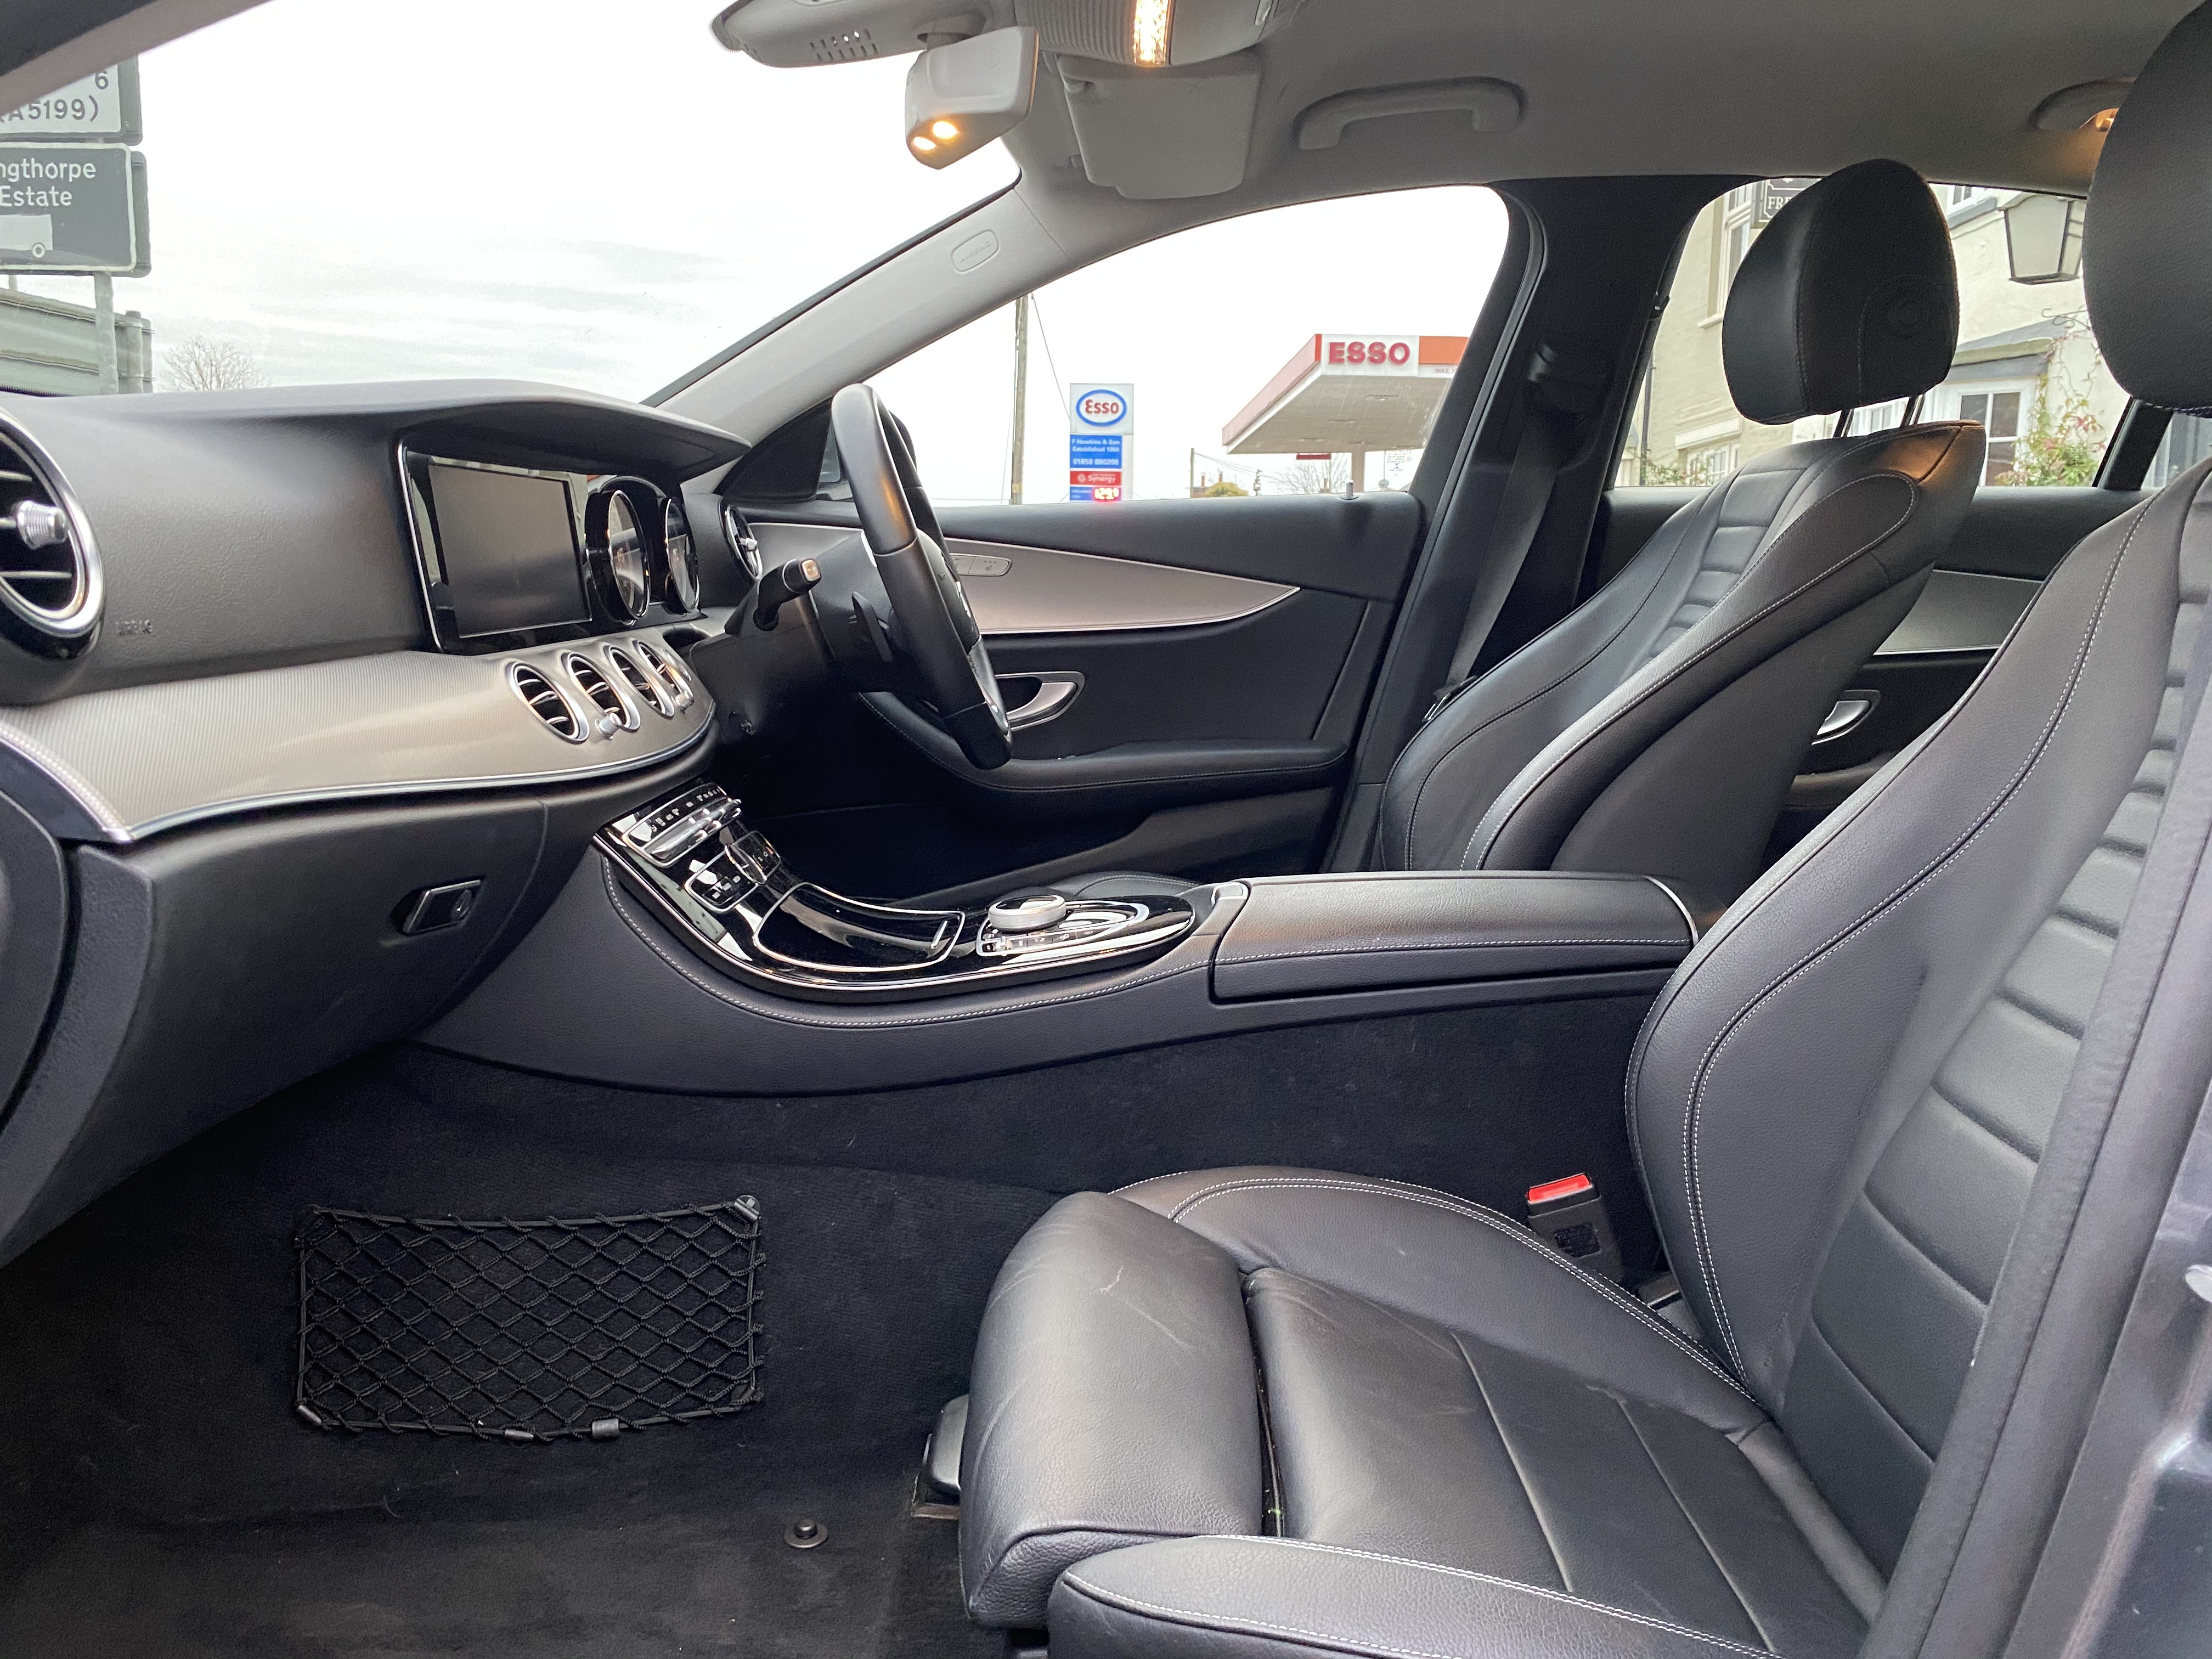 """ON SALE MERCEDES E220d """"SPECIAL EQUIPMENT"""" 9G-TRONIC (2019 MODEL) *GREAT SPEC*SAT NAV - LEATHER - Image 15 of 26"""